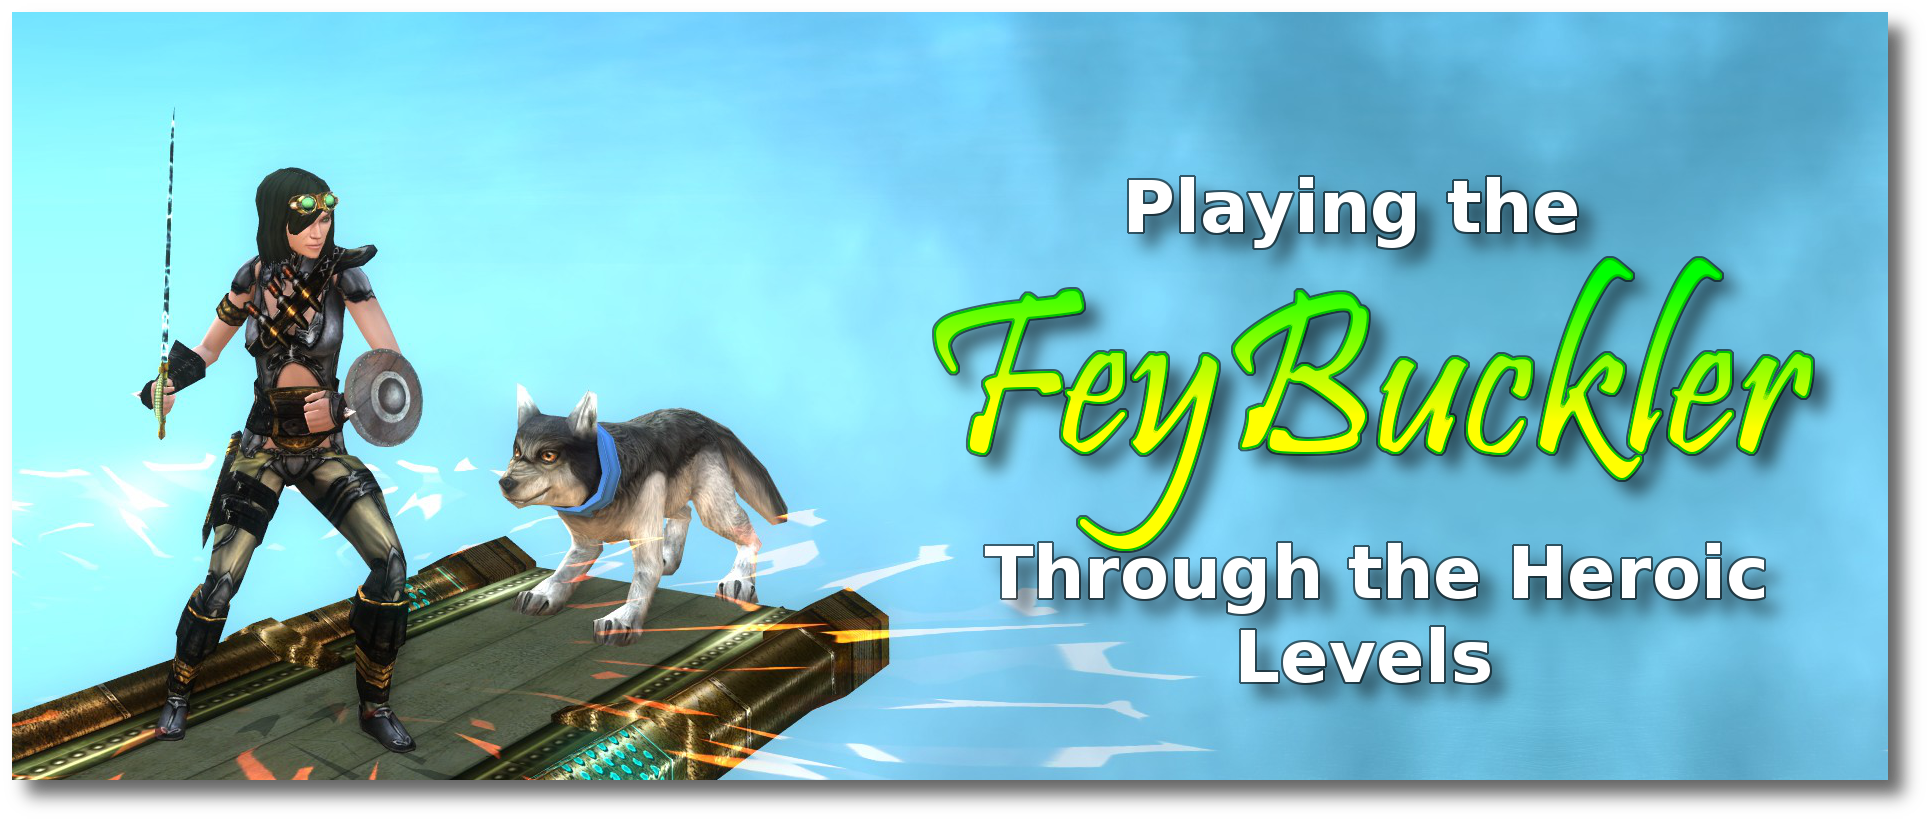 Playing the FeyBuckler